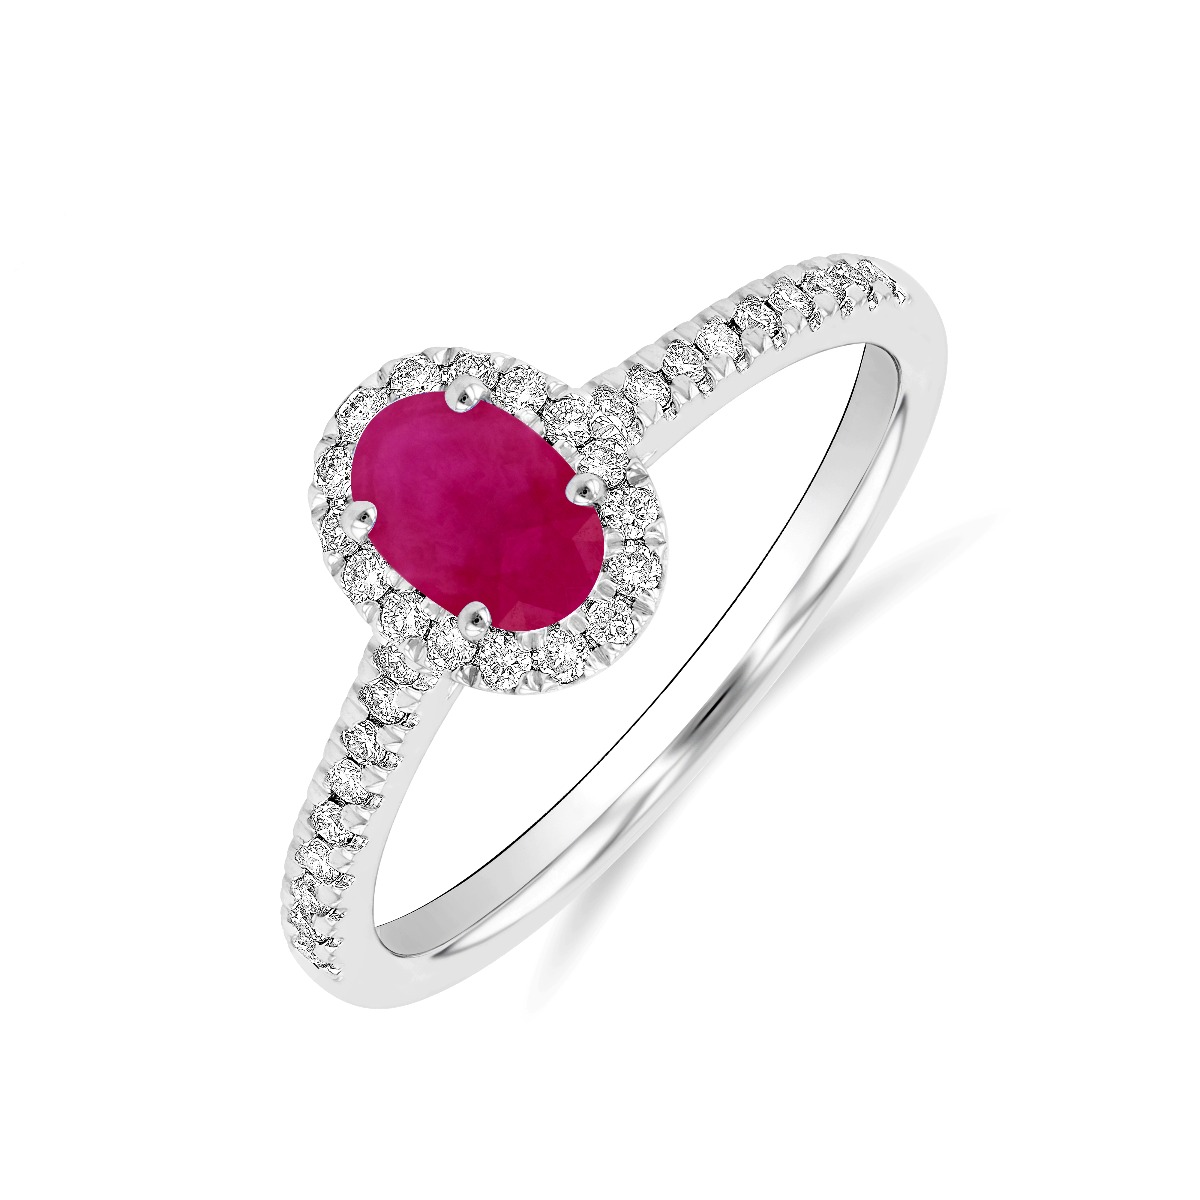 Riviera Collection 0.60ct Oval Ruby & Diamond Halo Ring